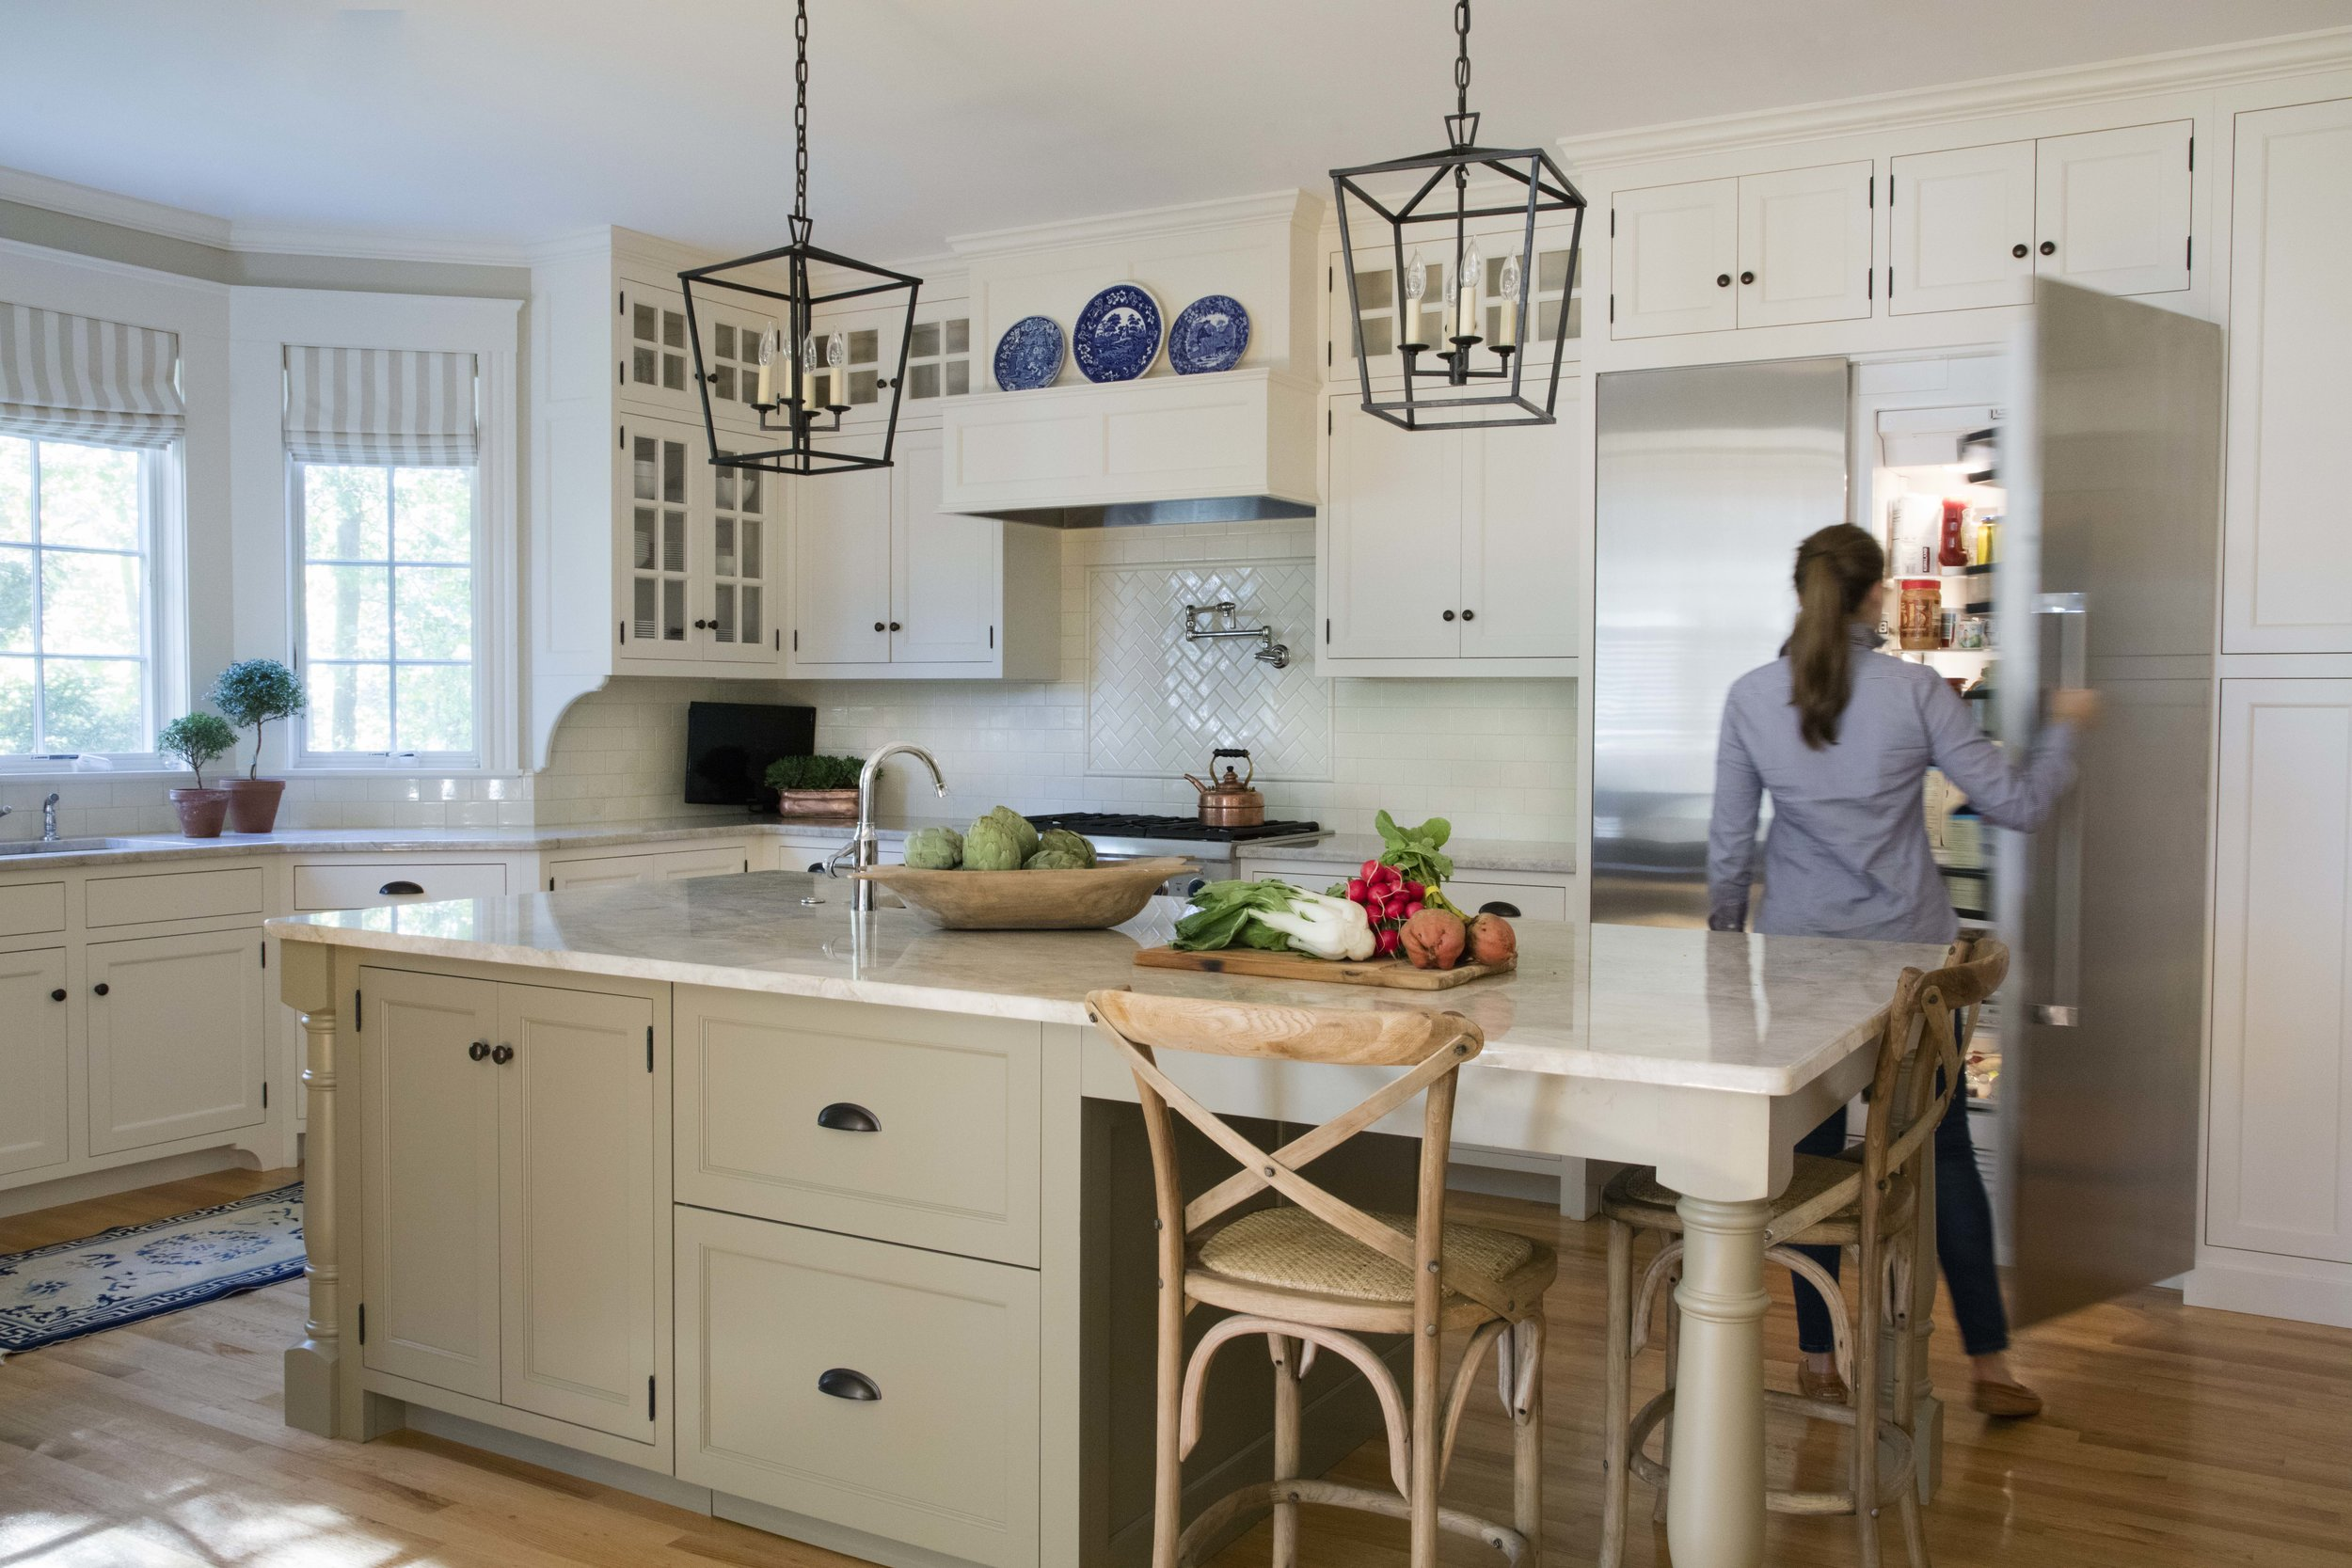 AGA-Lexington-Kitchen-7 copy.jpg